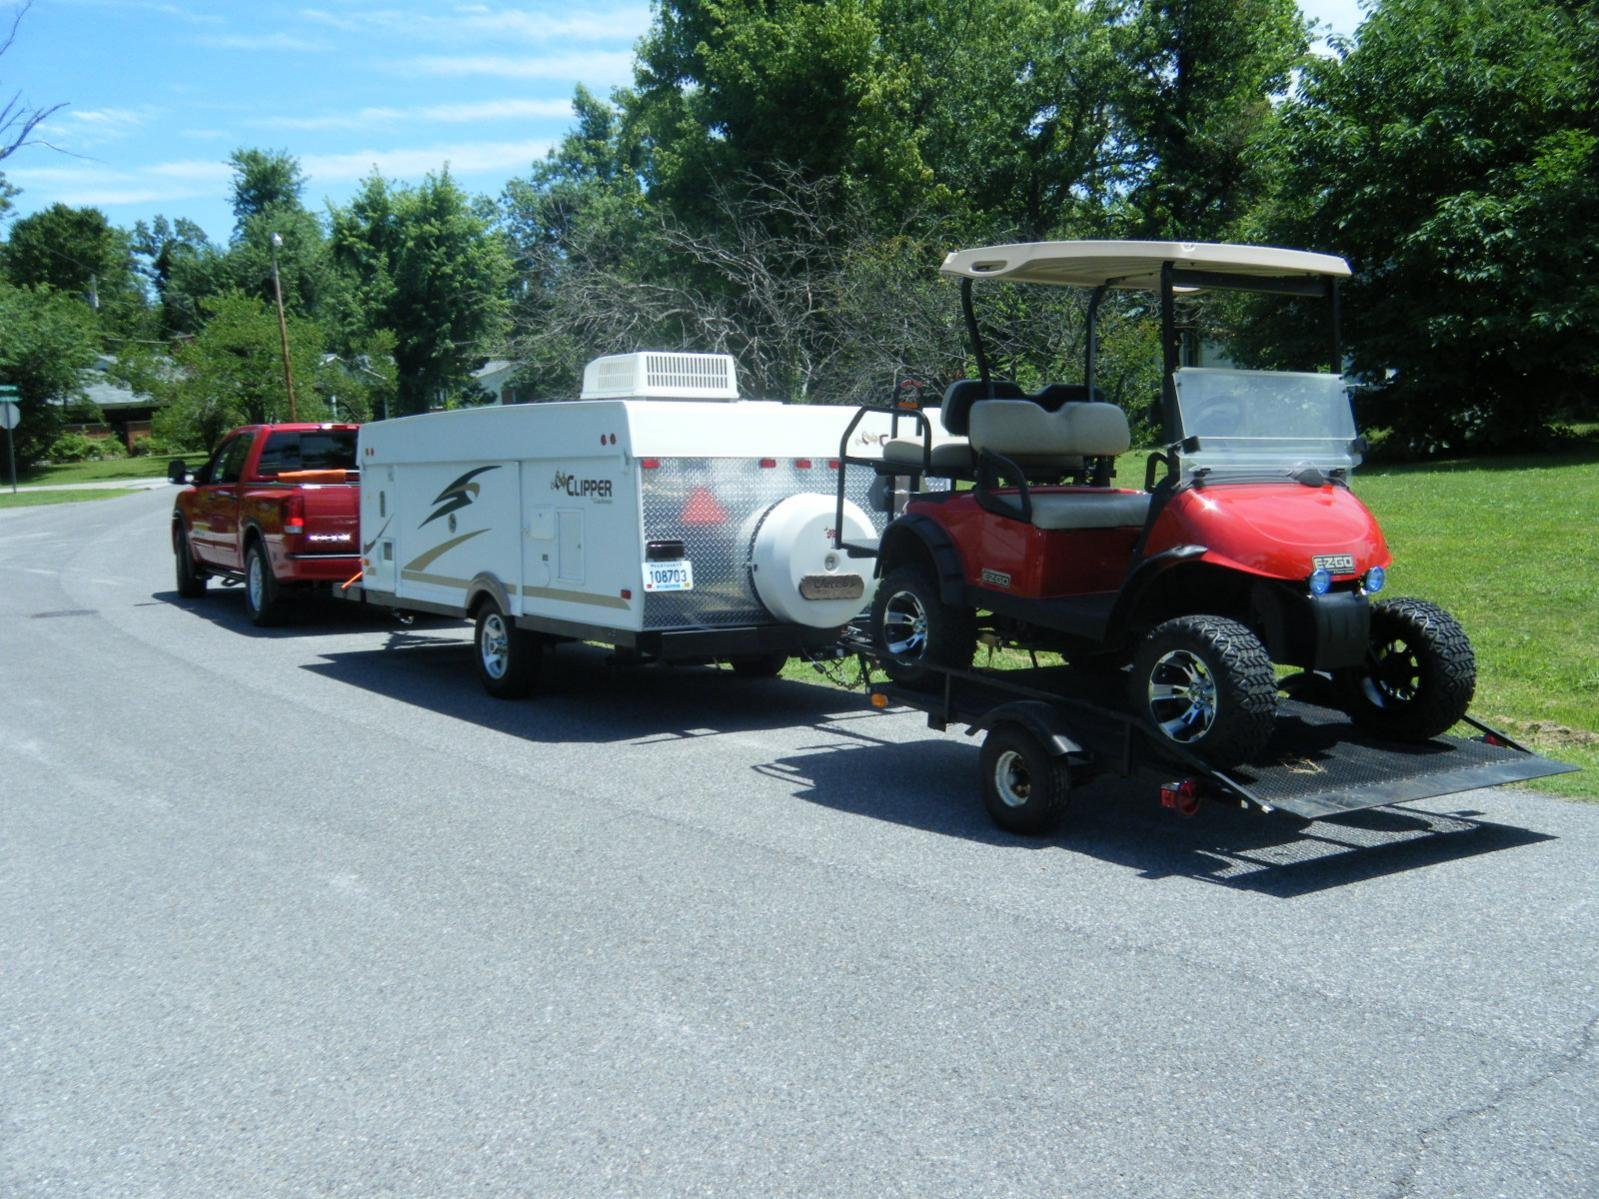 Hauling Golf Cart, pulling camper- with tailgate down ... on ford truck bed extender, kayak truck bed extender, chevrolet truck bed extender, hyundai truck bed extender, golf cart truck ramps, golf cart roof extender, nissan truck bed extender, golf cart wheel extender,